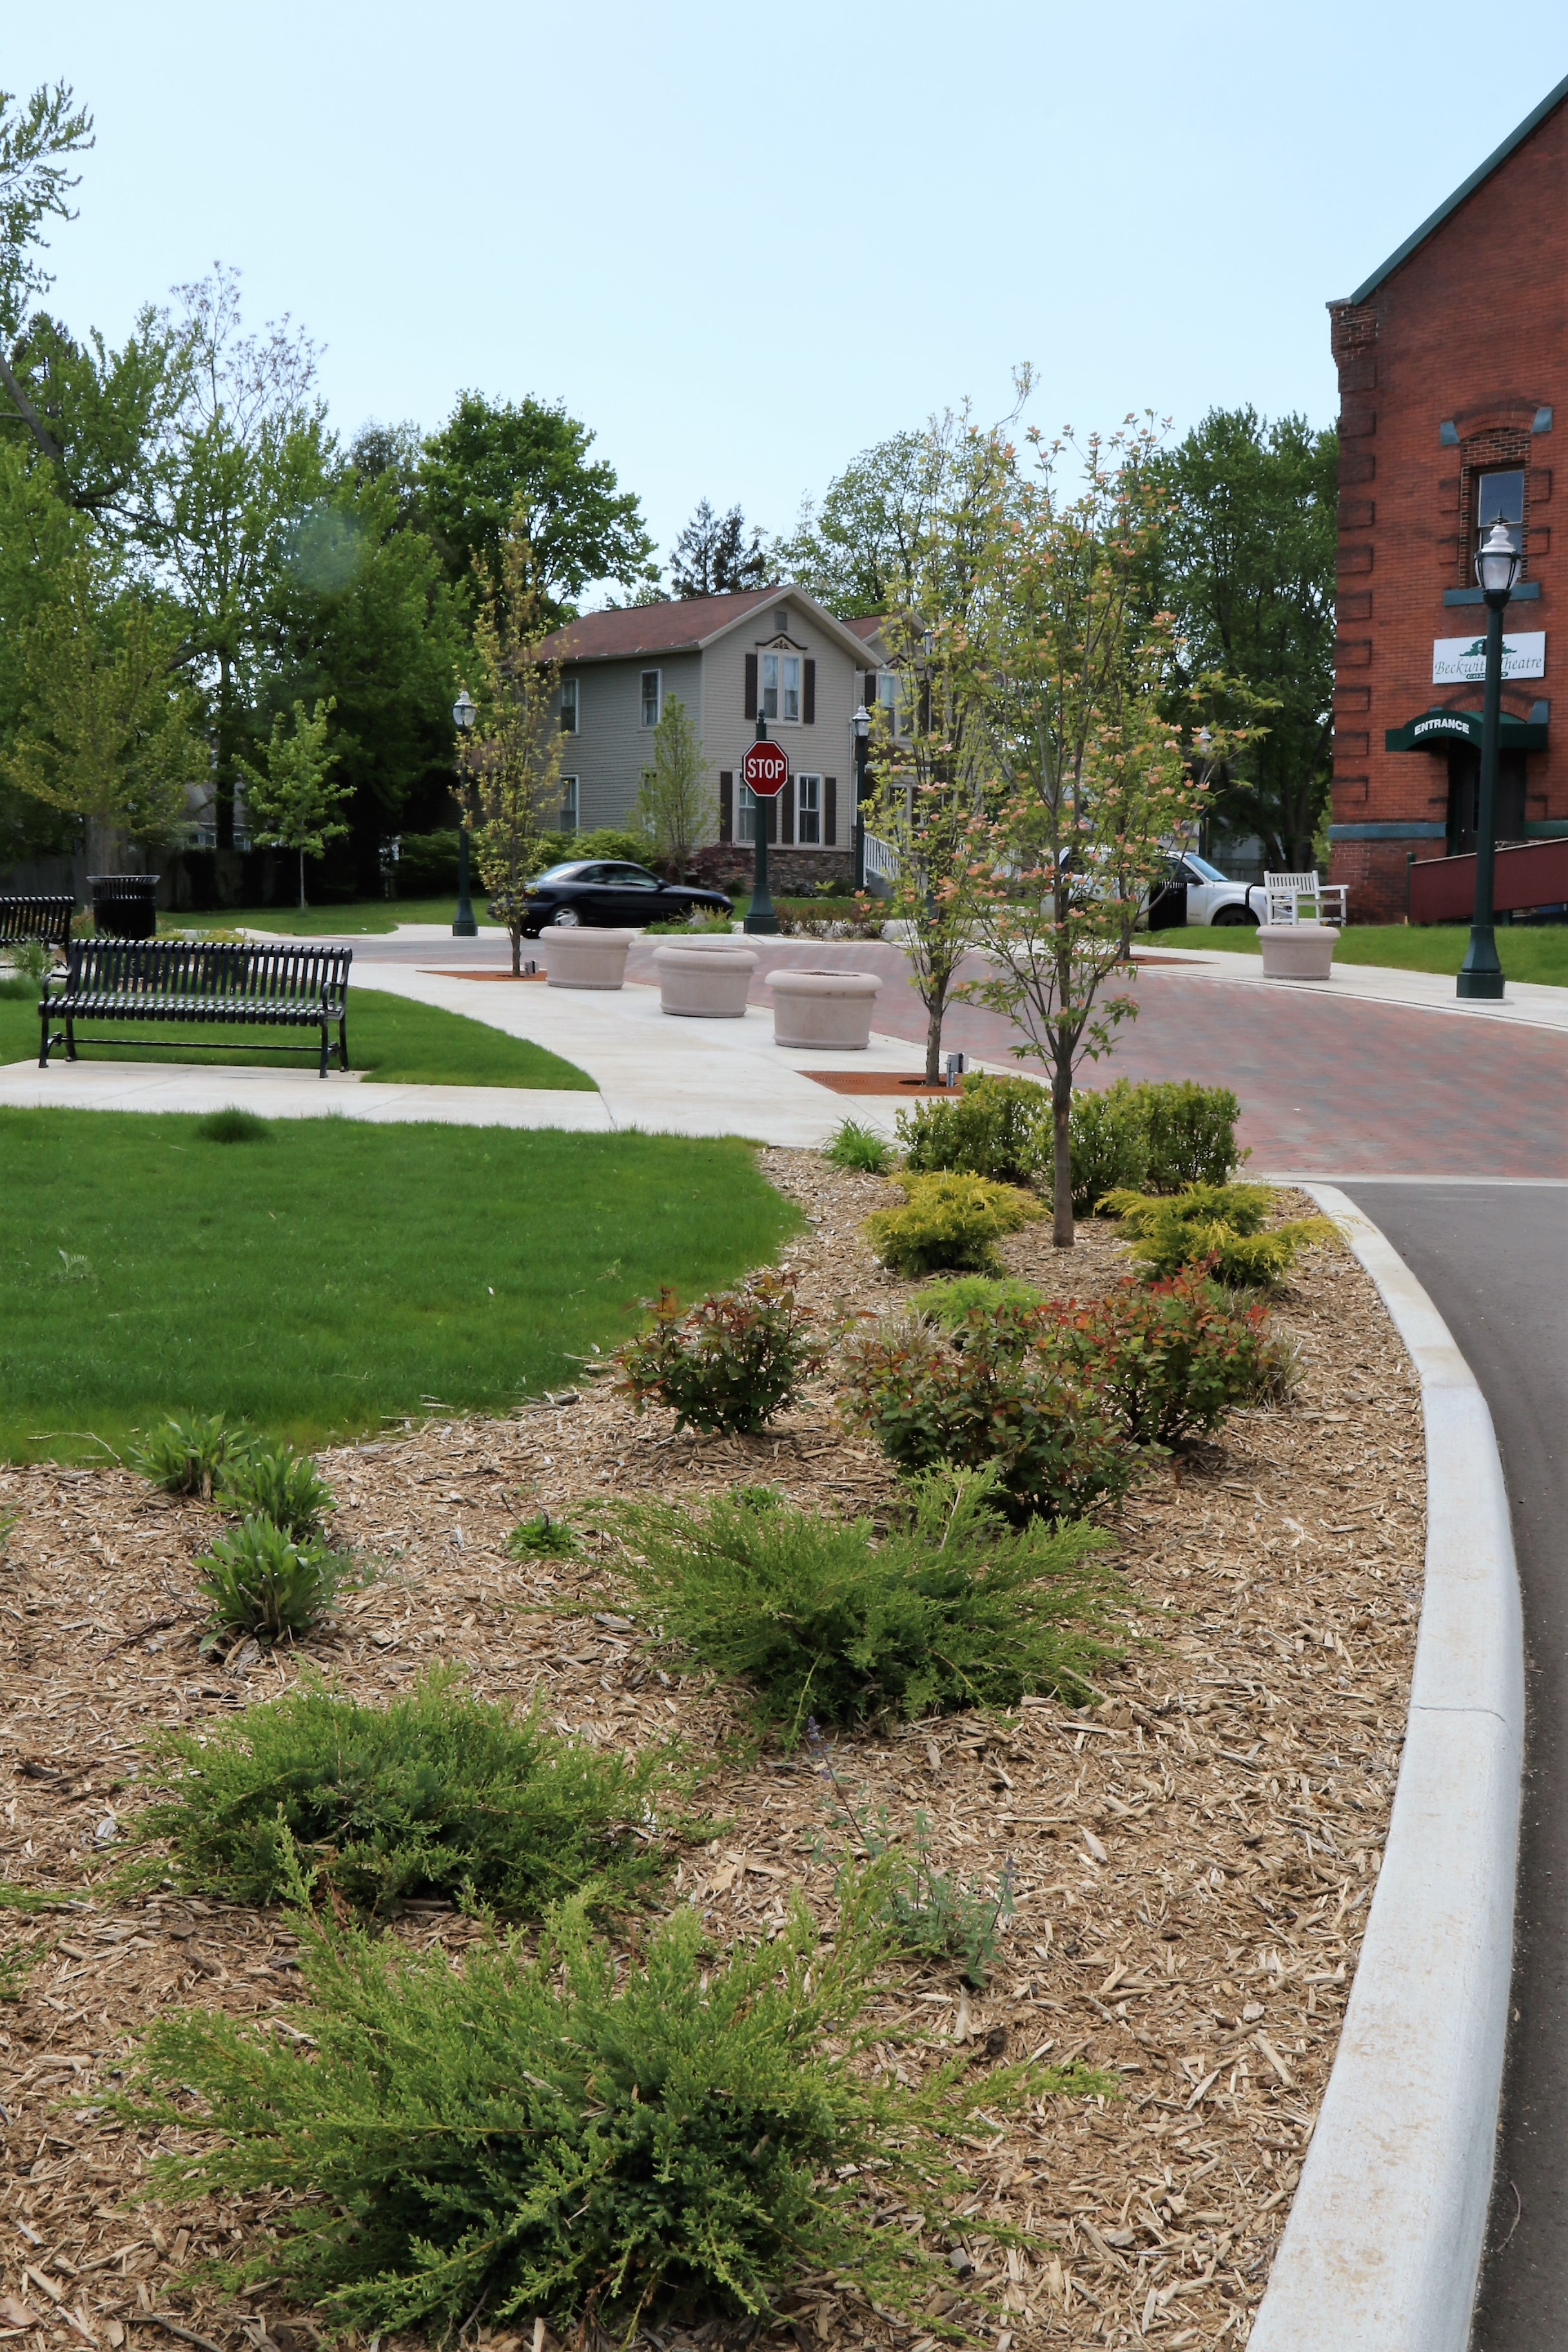 Dowagiac Quality of Life curb appeal